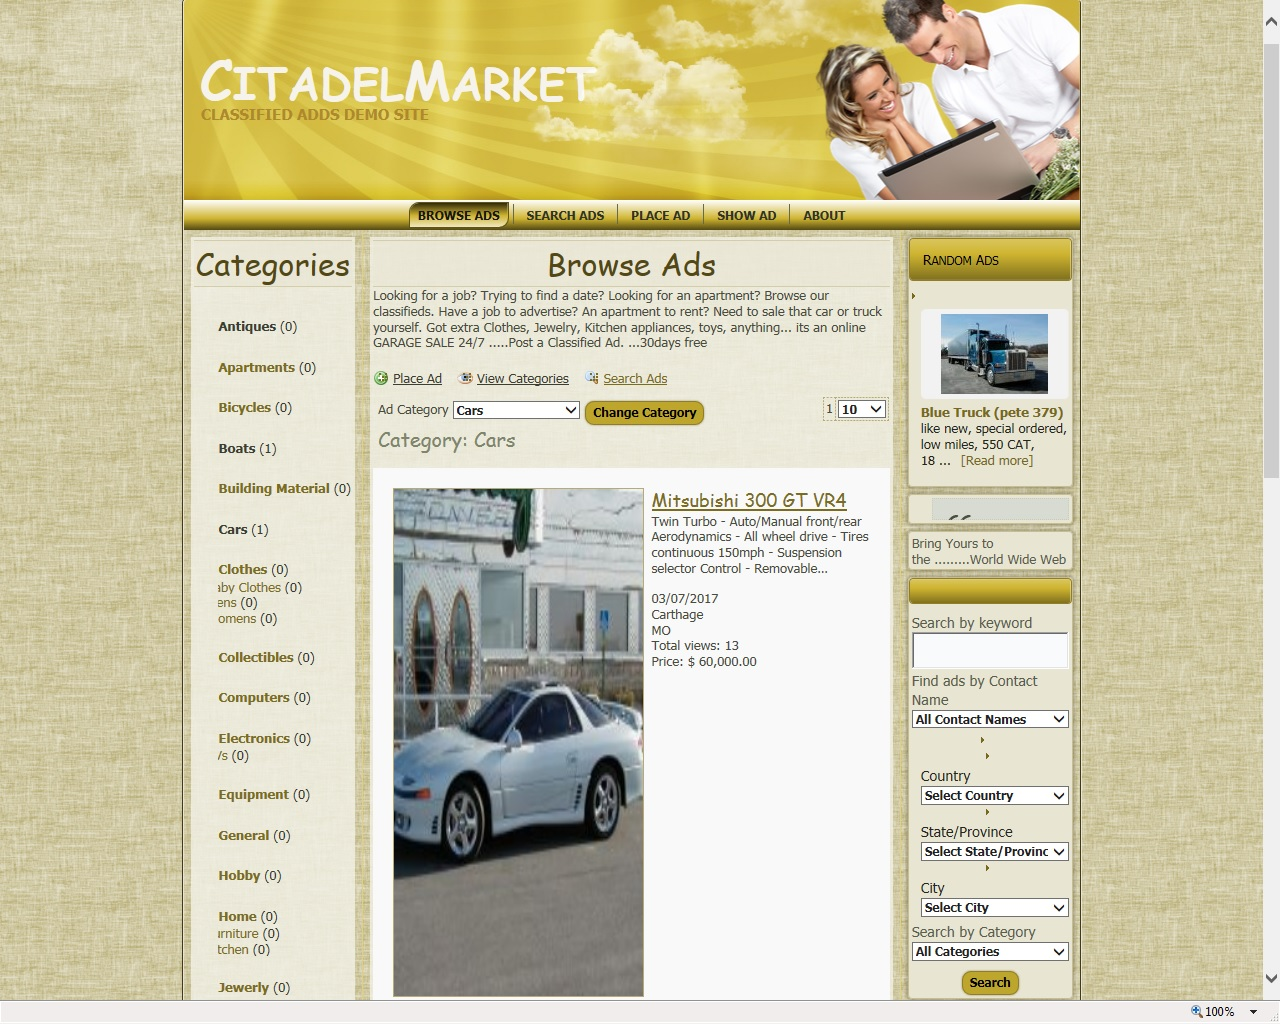 Citadelmarket Classified Ads Website